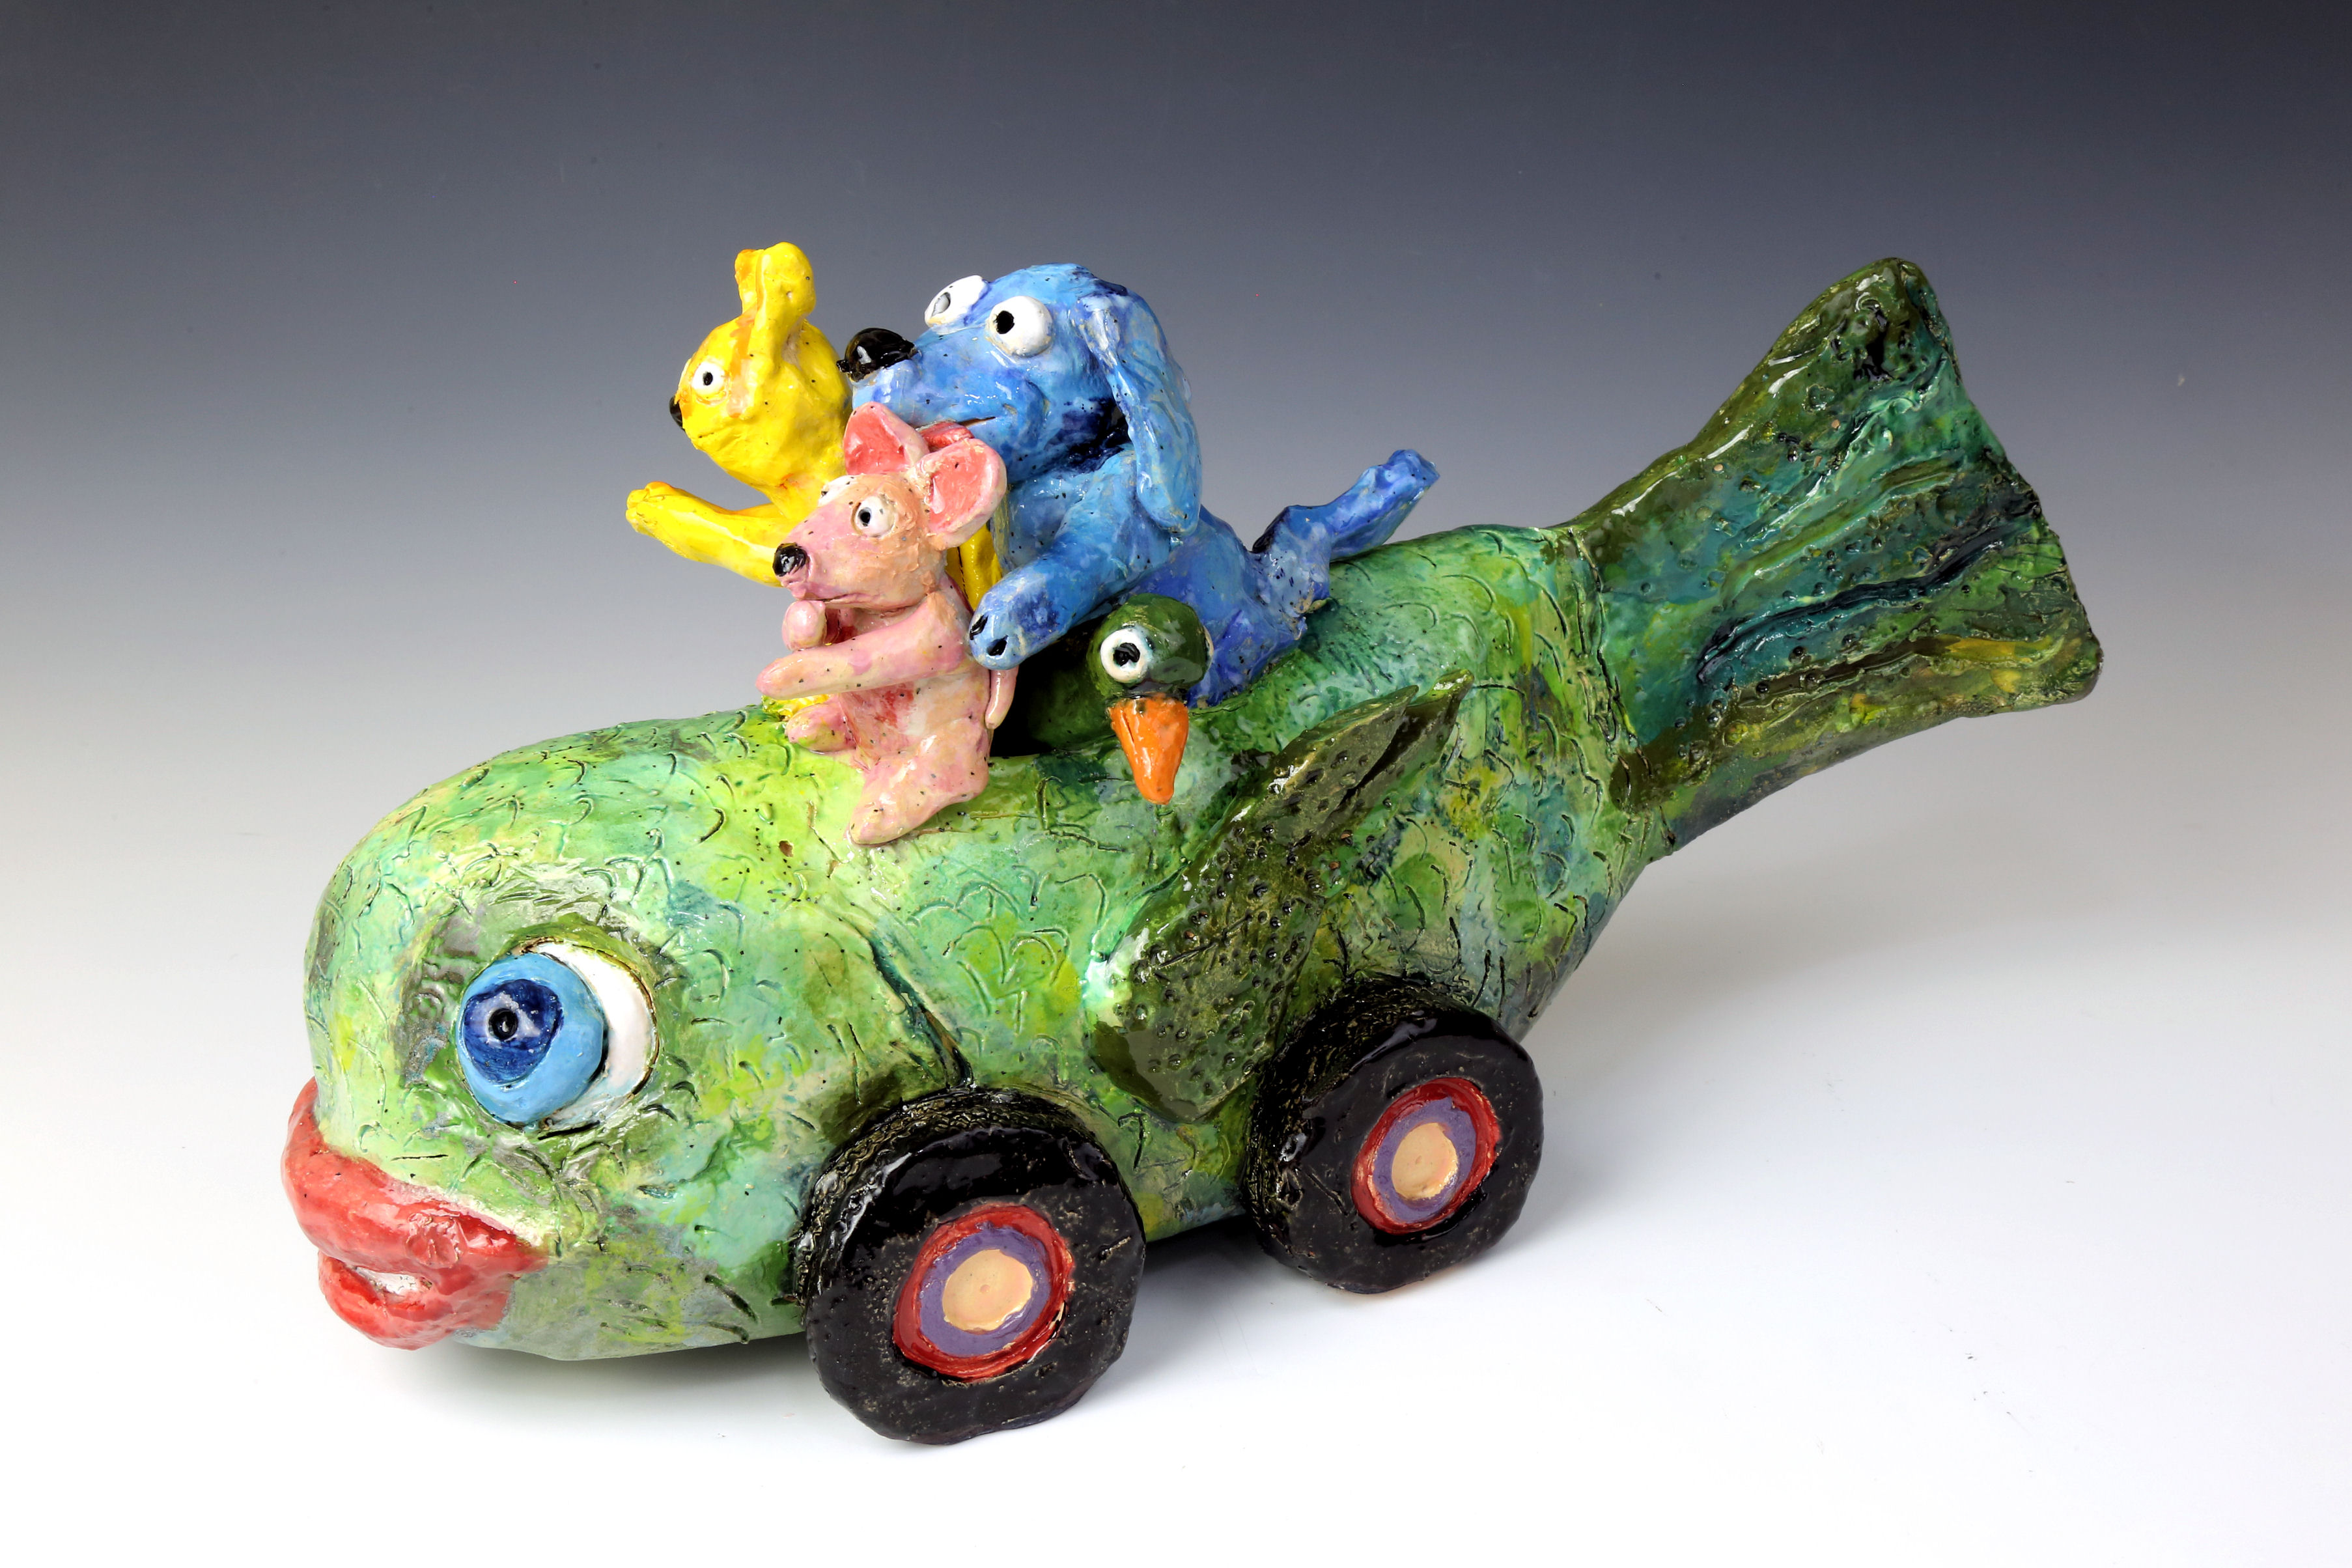 A clay fishcar